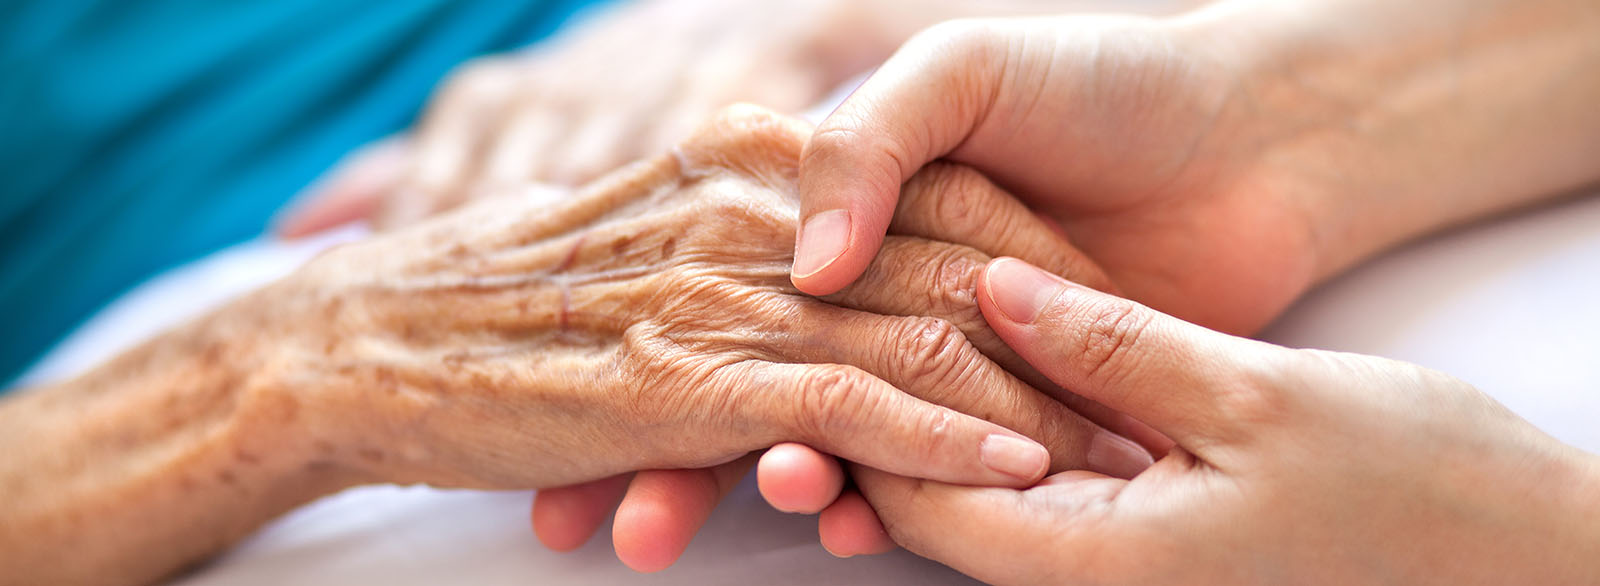 Elderly hand clasped with younger hands